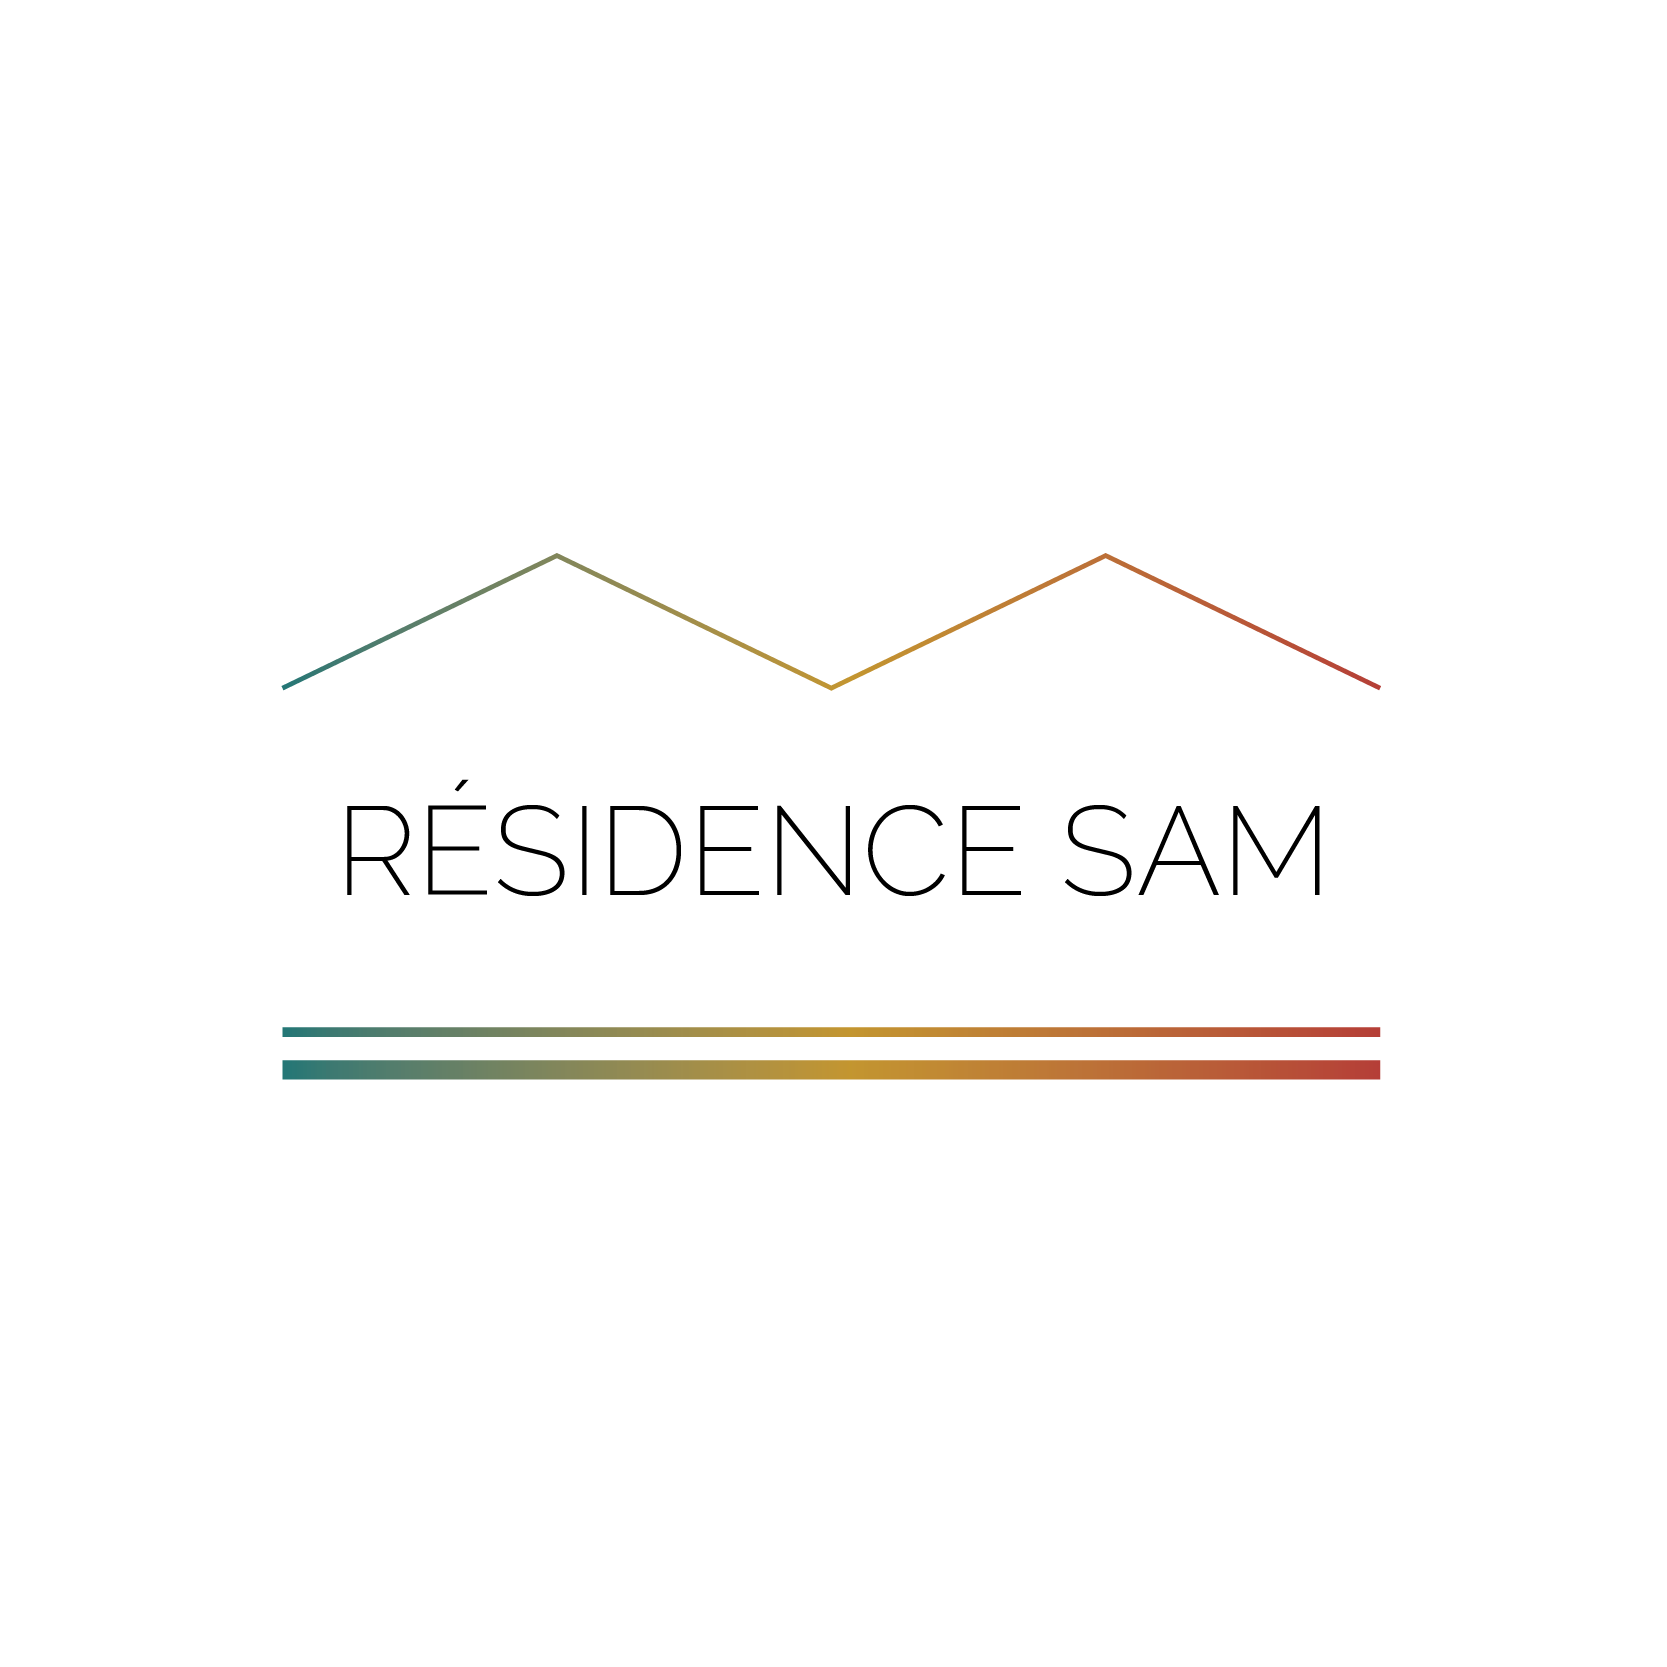 SAM 2017 RESIDENTS